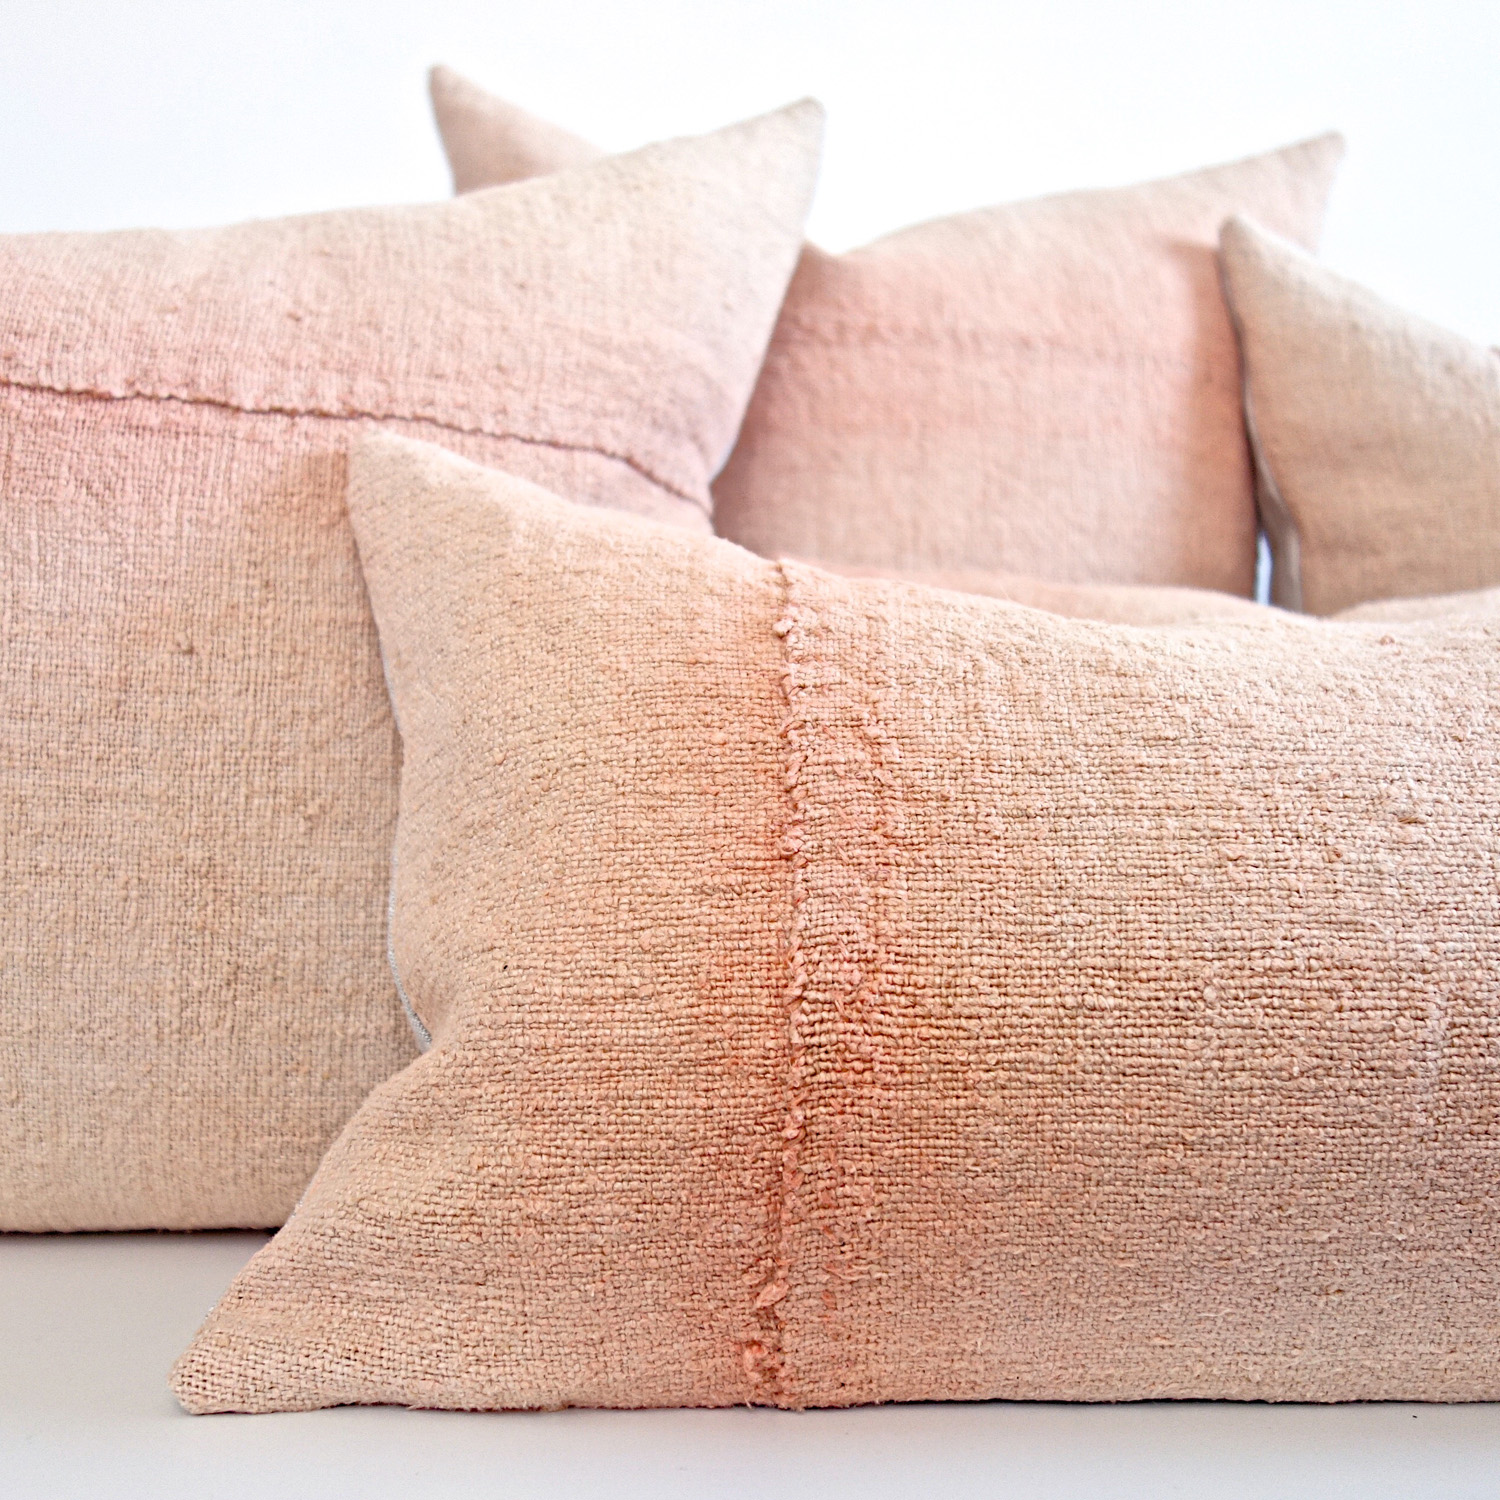 espanyolet_peach_pillows_cushions_handstitching_detail.jpg